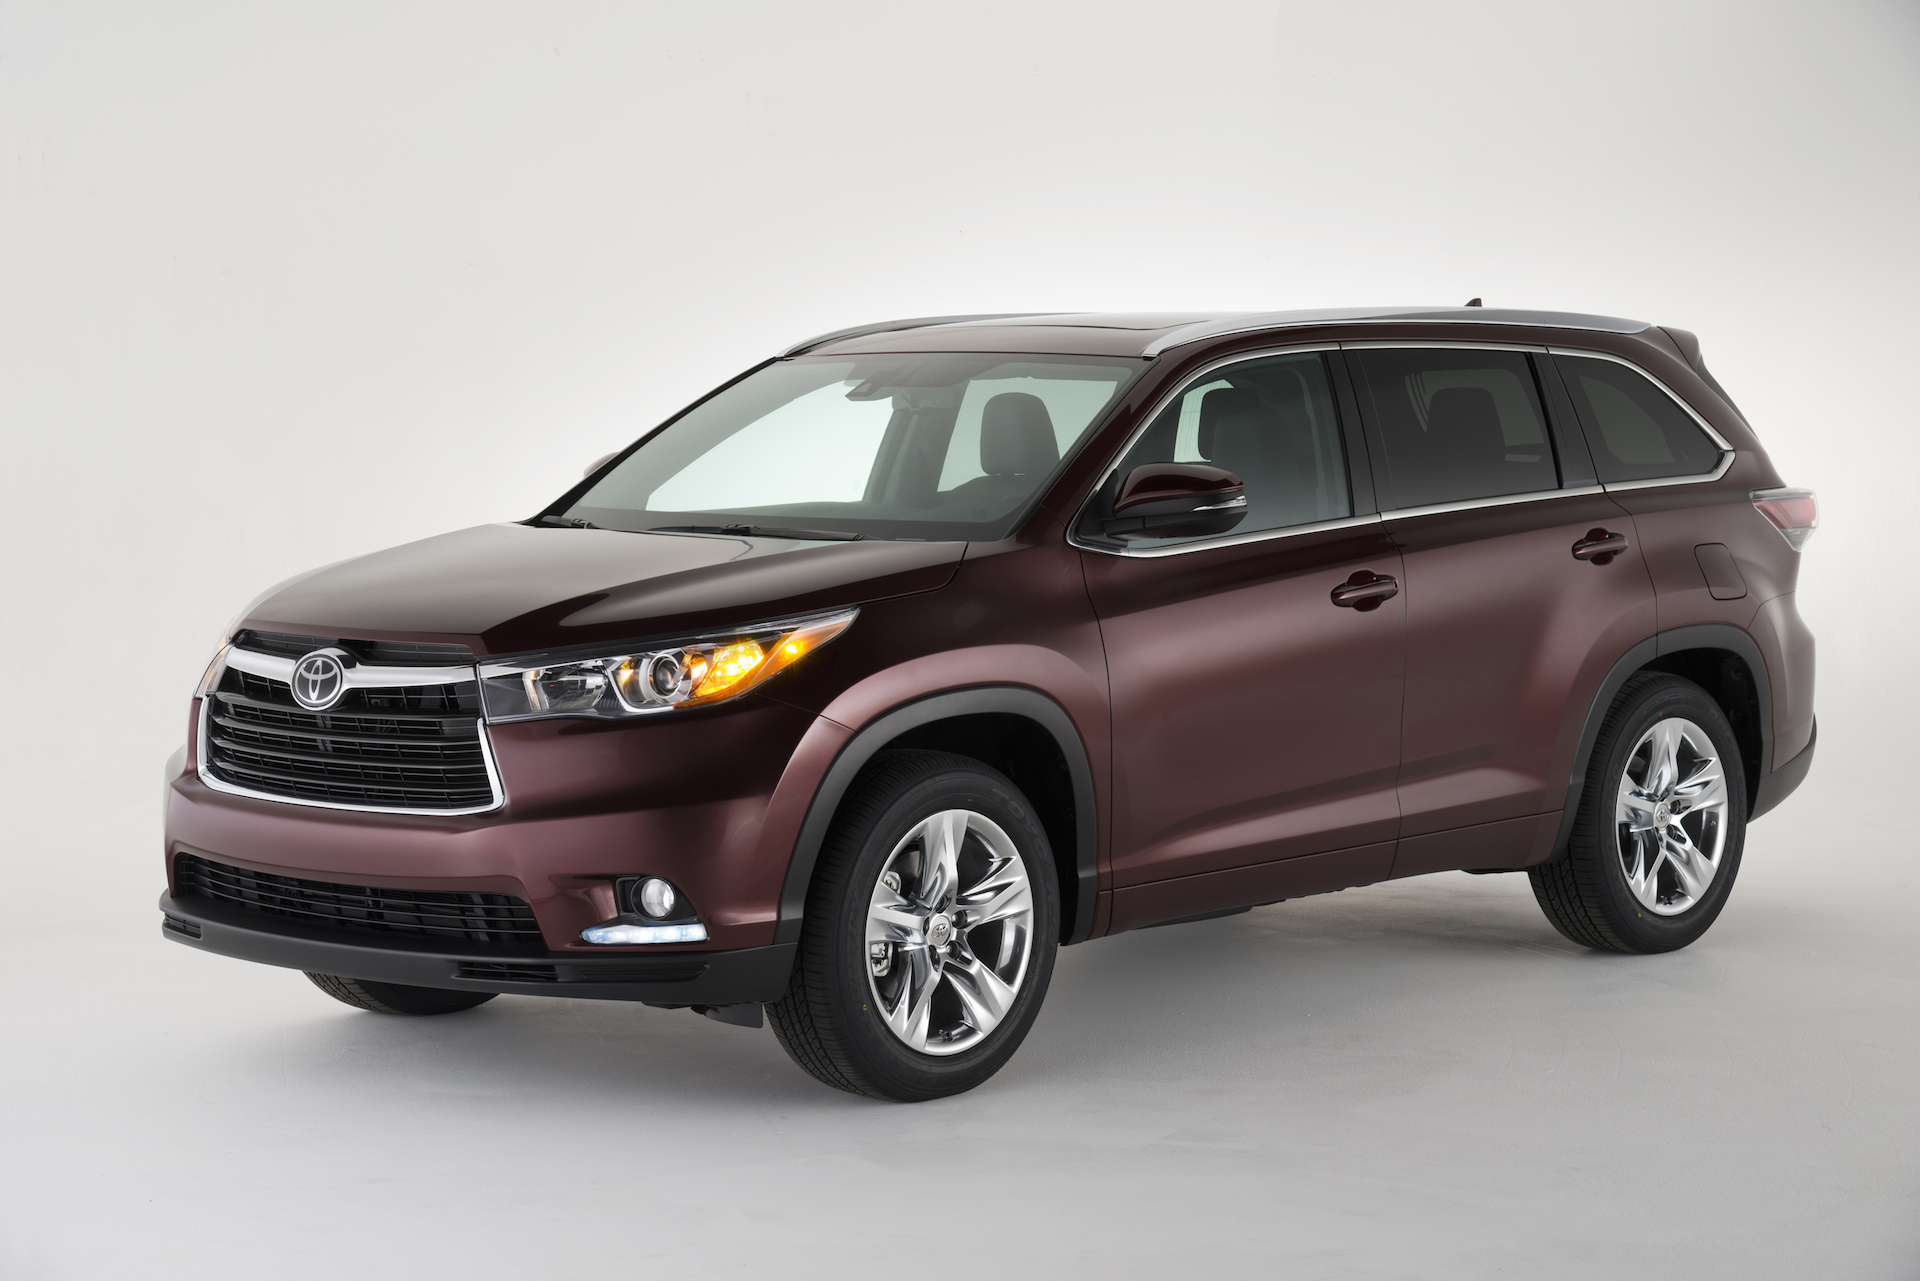 Honda Pilot Vs Toyota Highlander Compare Cars